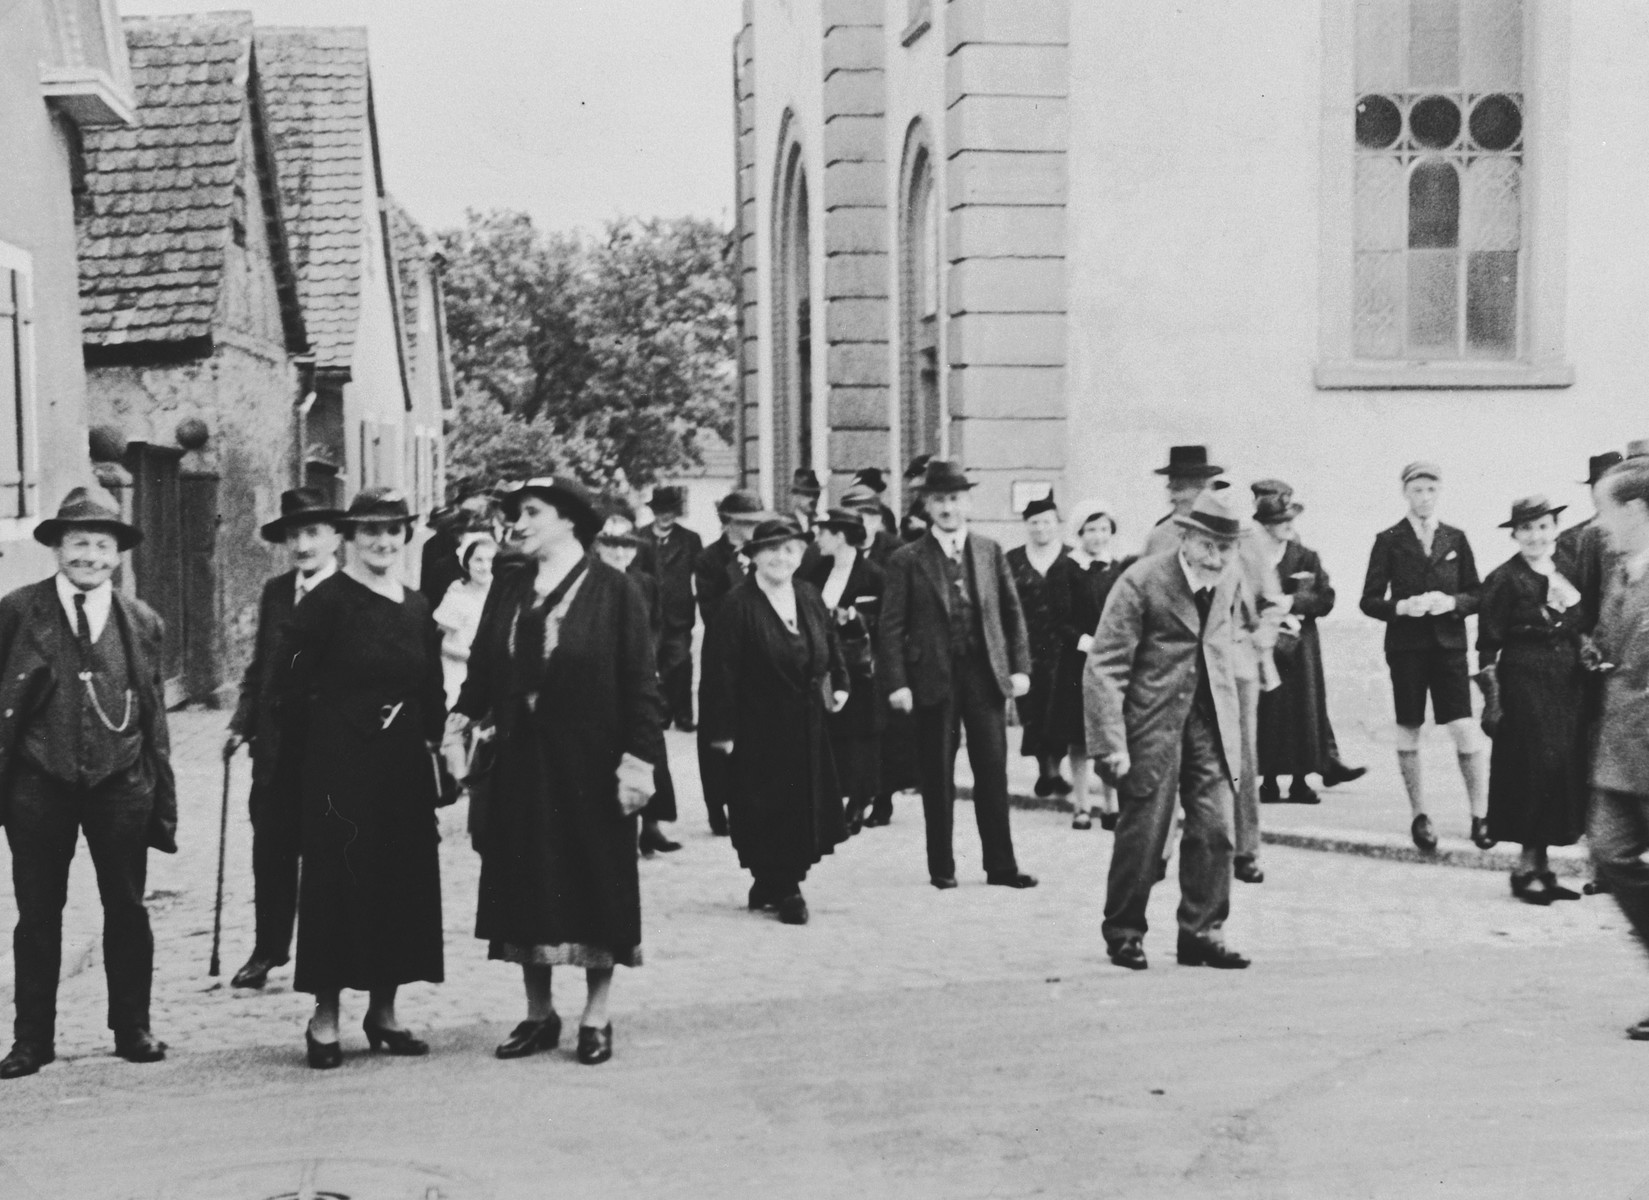 German Jews leave the synagogue on Judengasse at the end of Sabbath morning services.  This is part of series of photographs taken of the Breisach Jewish community 1937.  In October 1940 the entire community was deported to the Gurs internment camp in southern France.